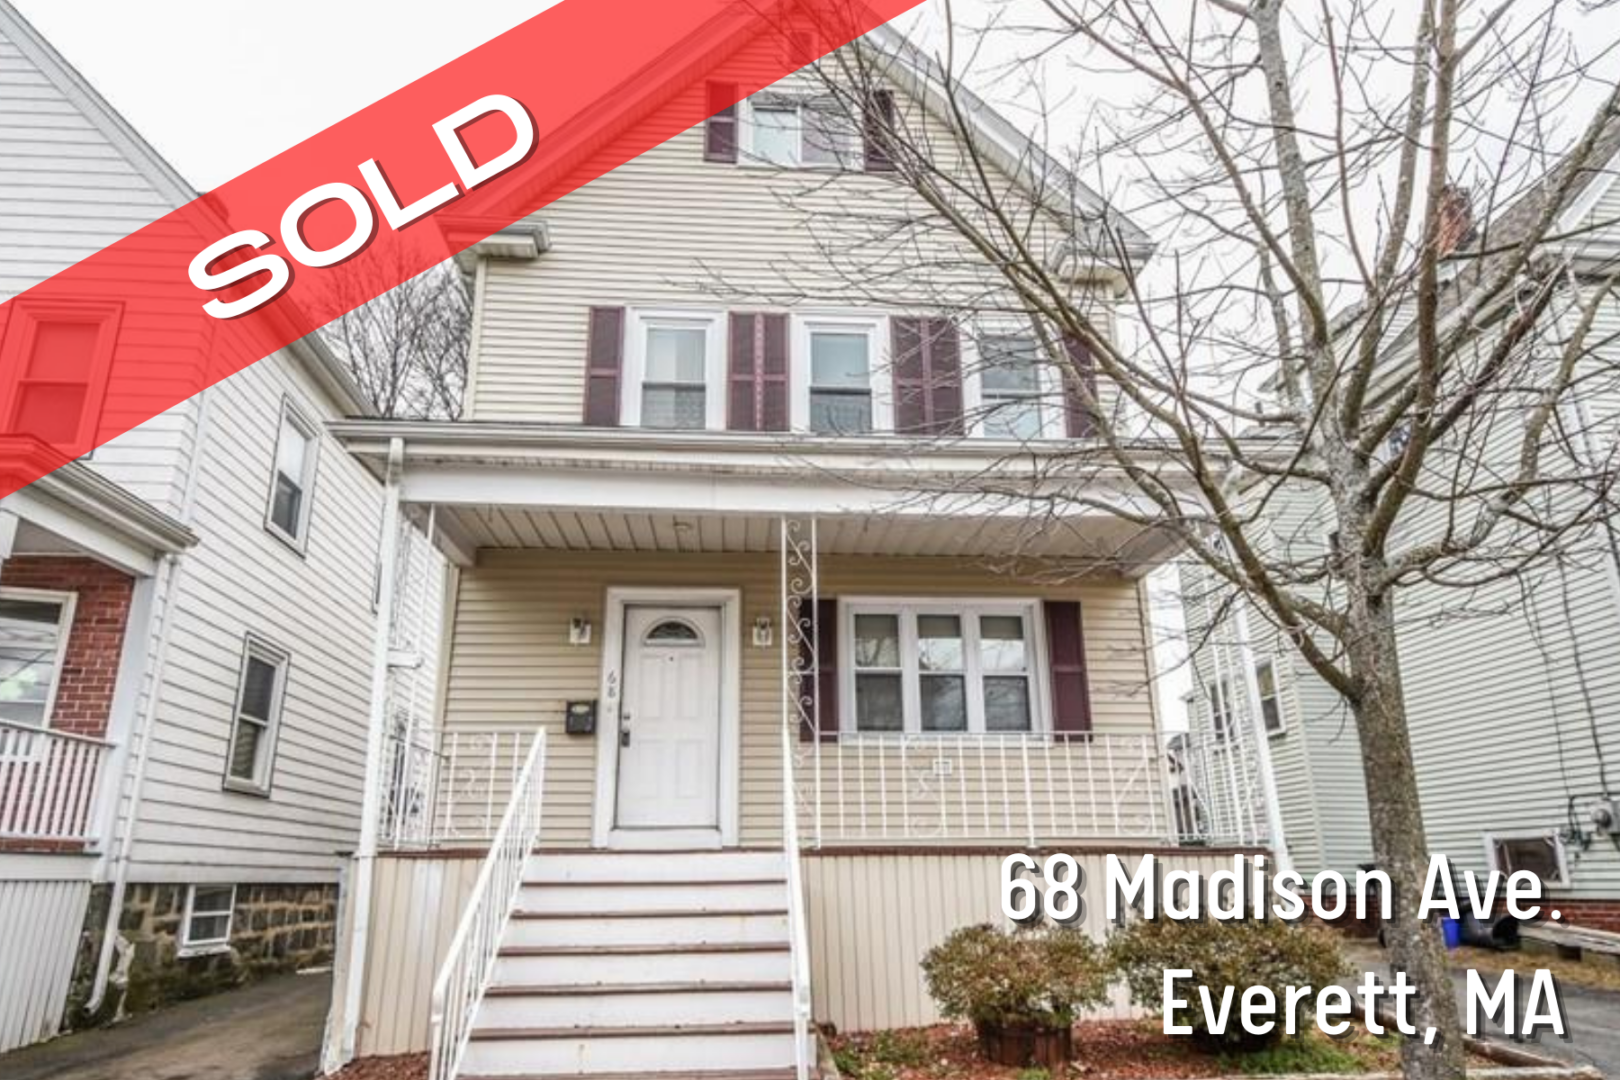 Single-Family House Sold in Everett, MA